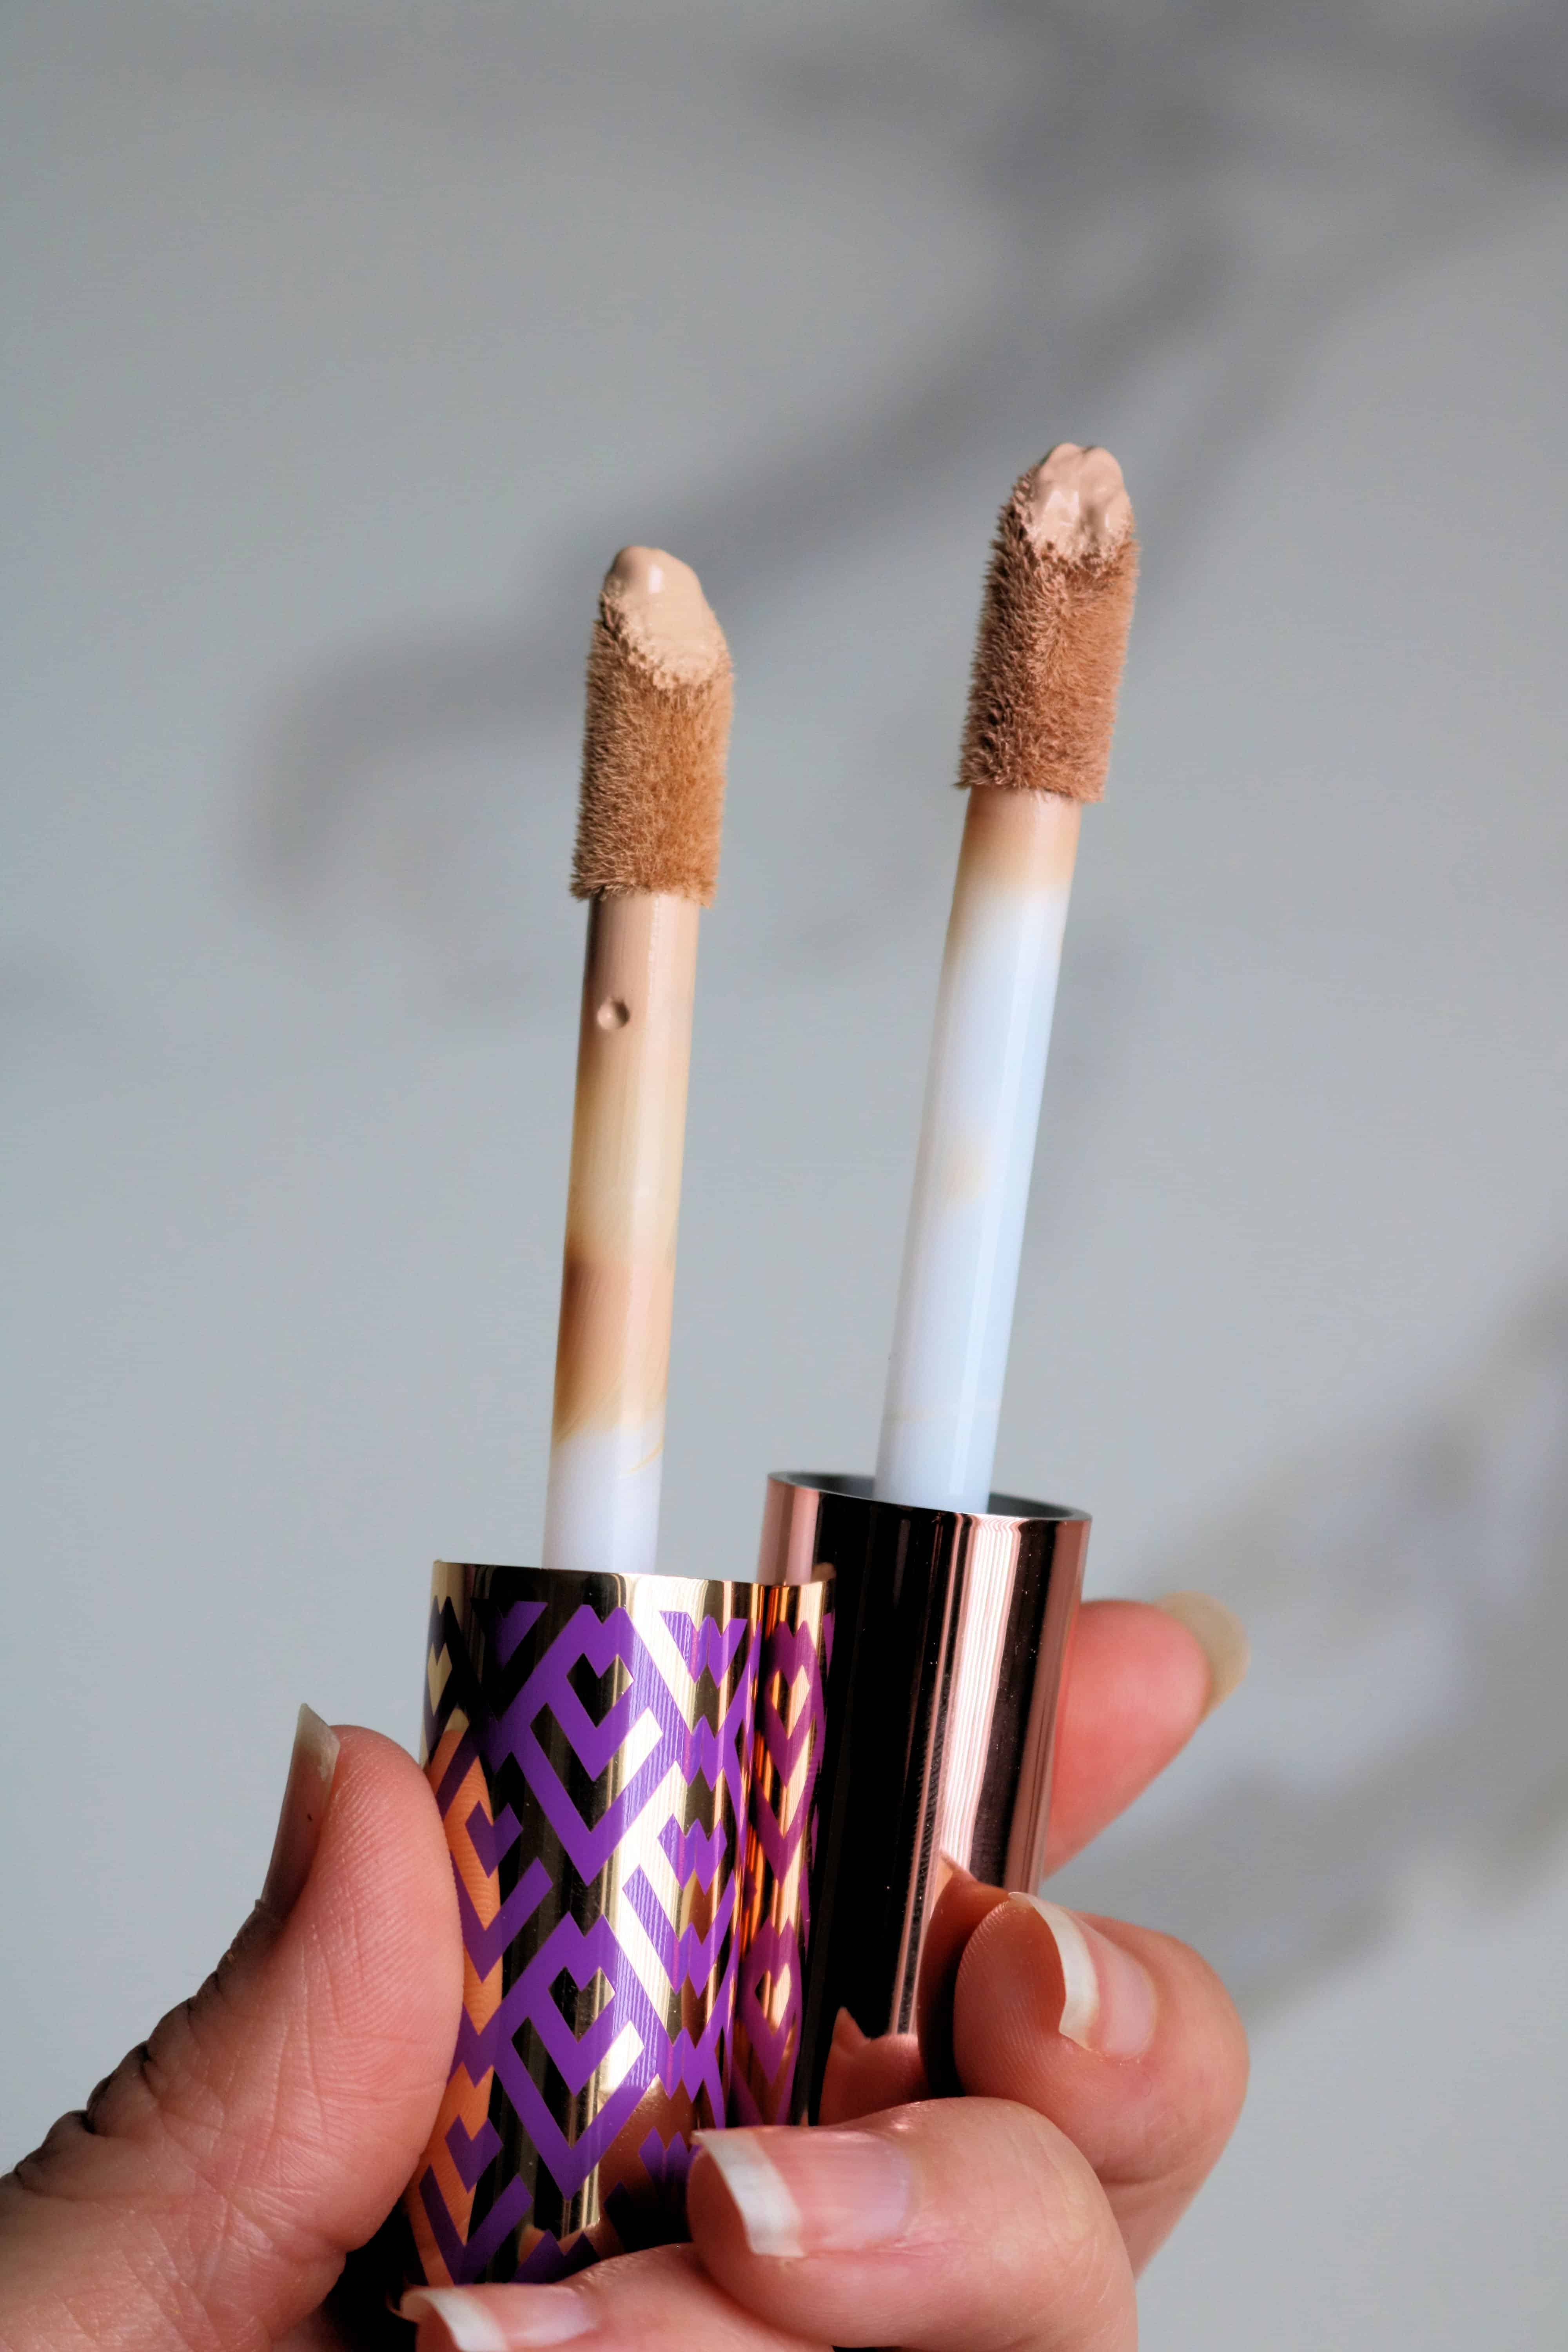 Is the Makeup Revolution Conceal & Define Concealer a dupe for the Tarte Shape Tape? Find out in my full review of this affordable drugstore concealer with swatches and a side-by-side comparison of the two concealers.#drugstoremakeup #makeupreview #dupes